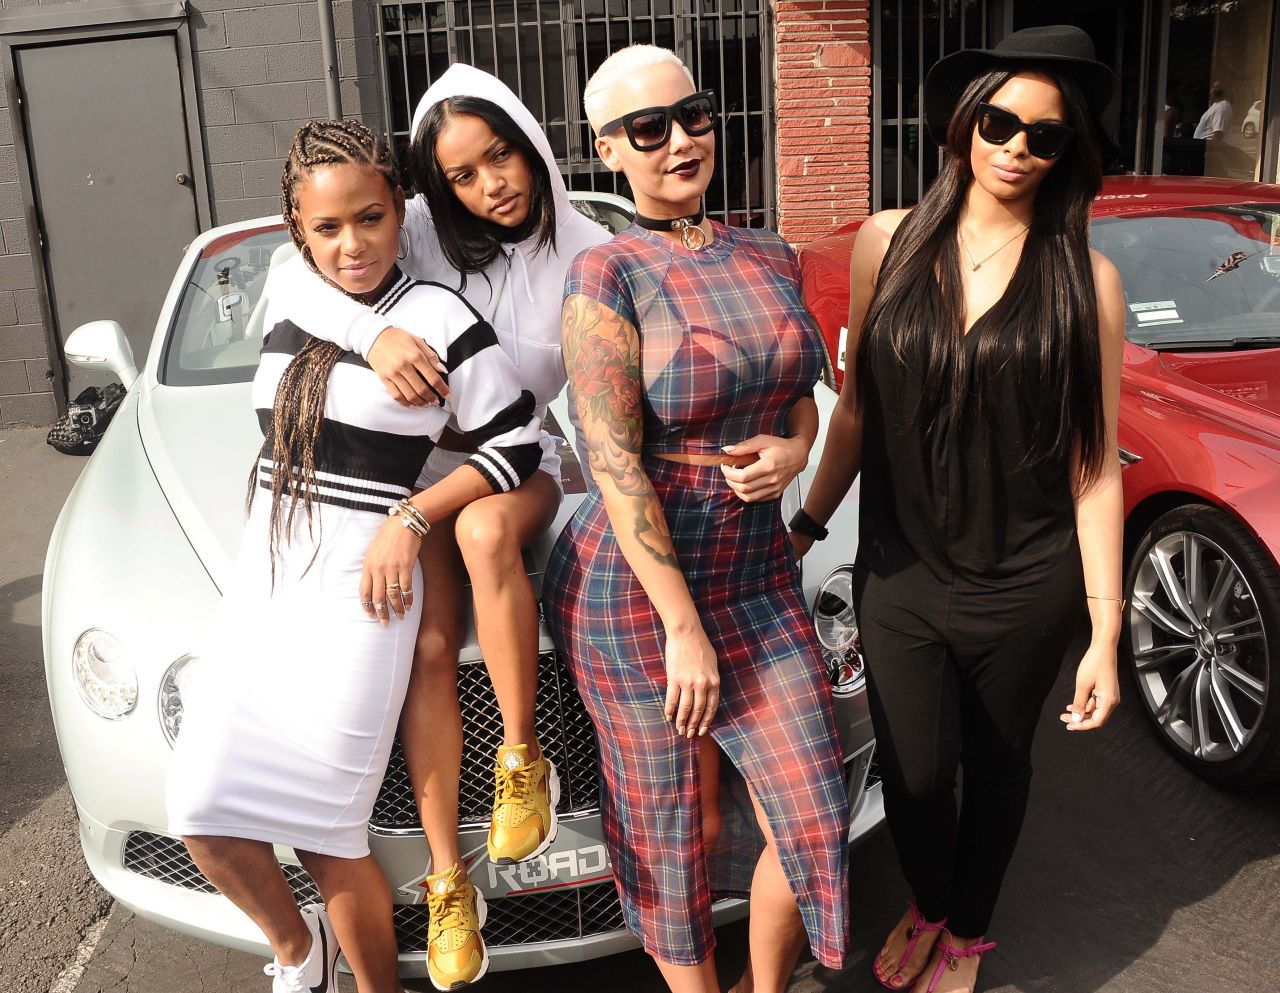 christina-milian-karrueche-tran-and-amber-rose-get-ready-to-go-to-coachella-in-los-angeles_6